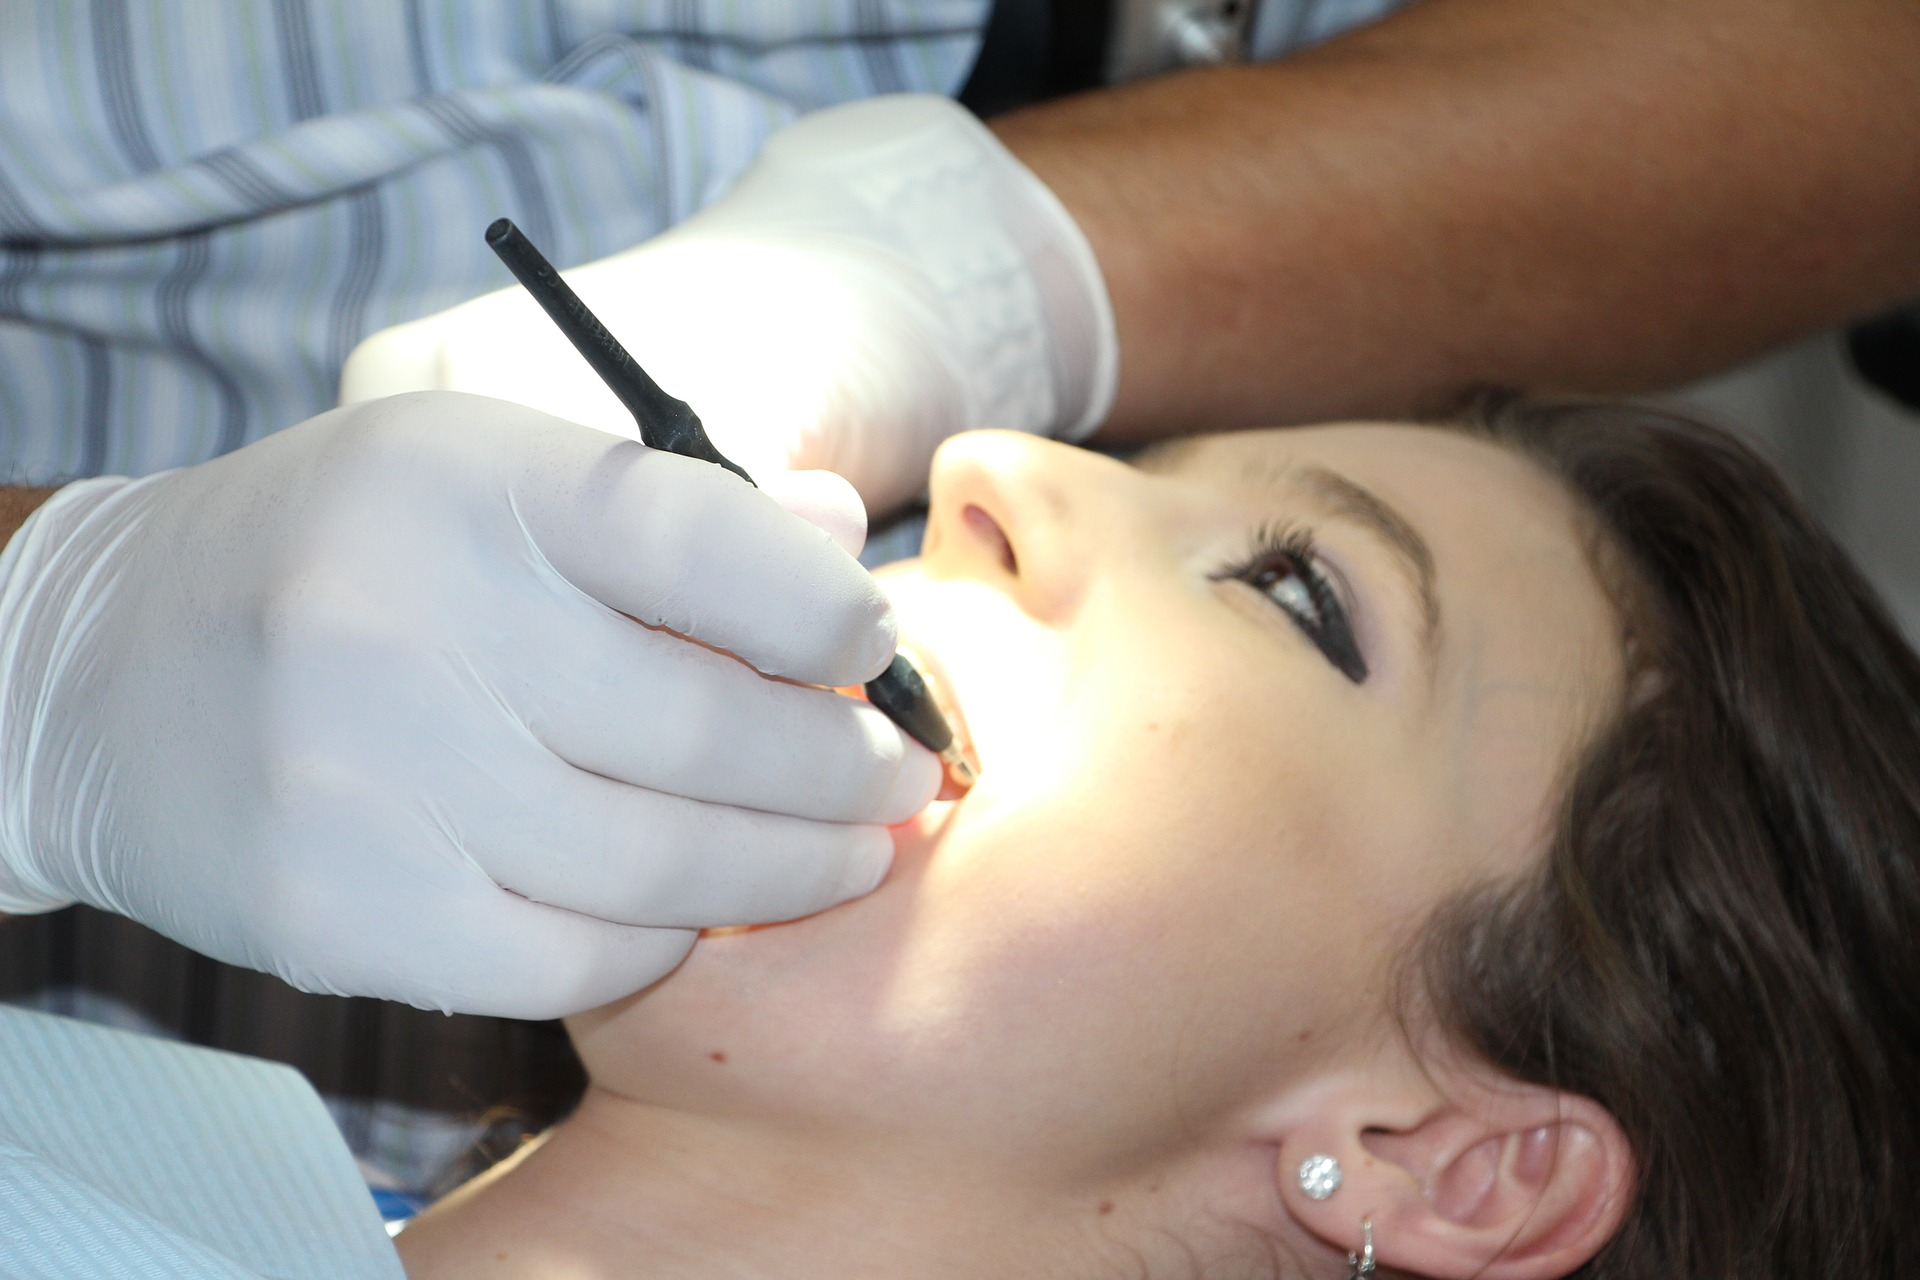 General check up It is a girl who is checking her oral health